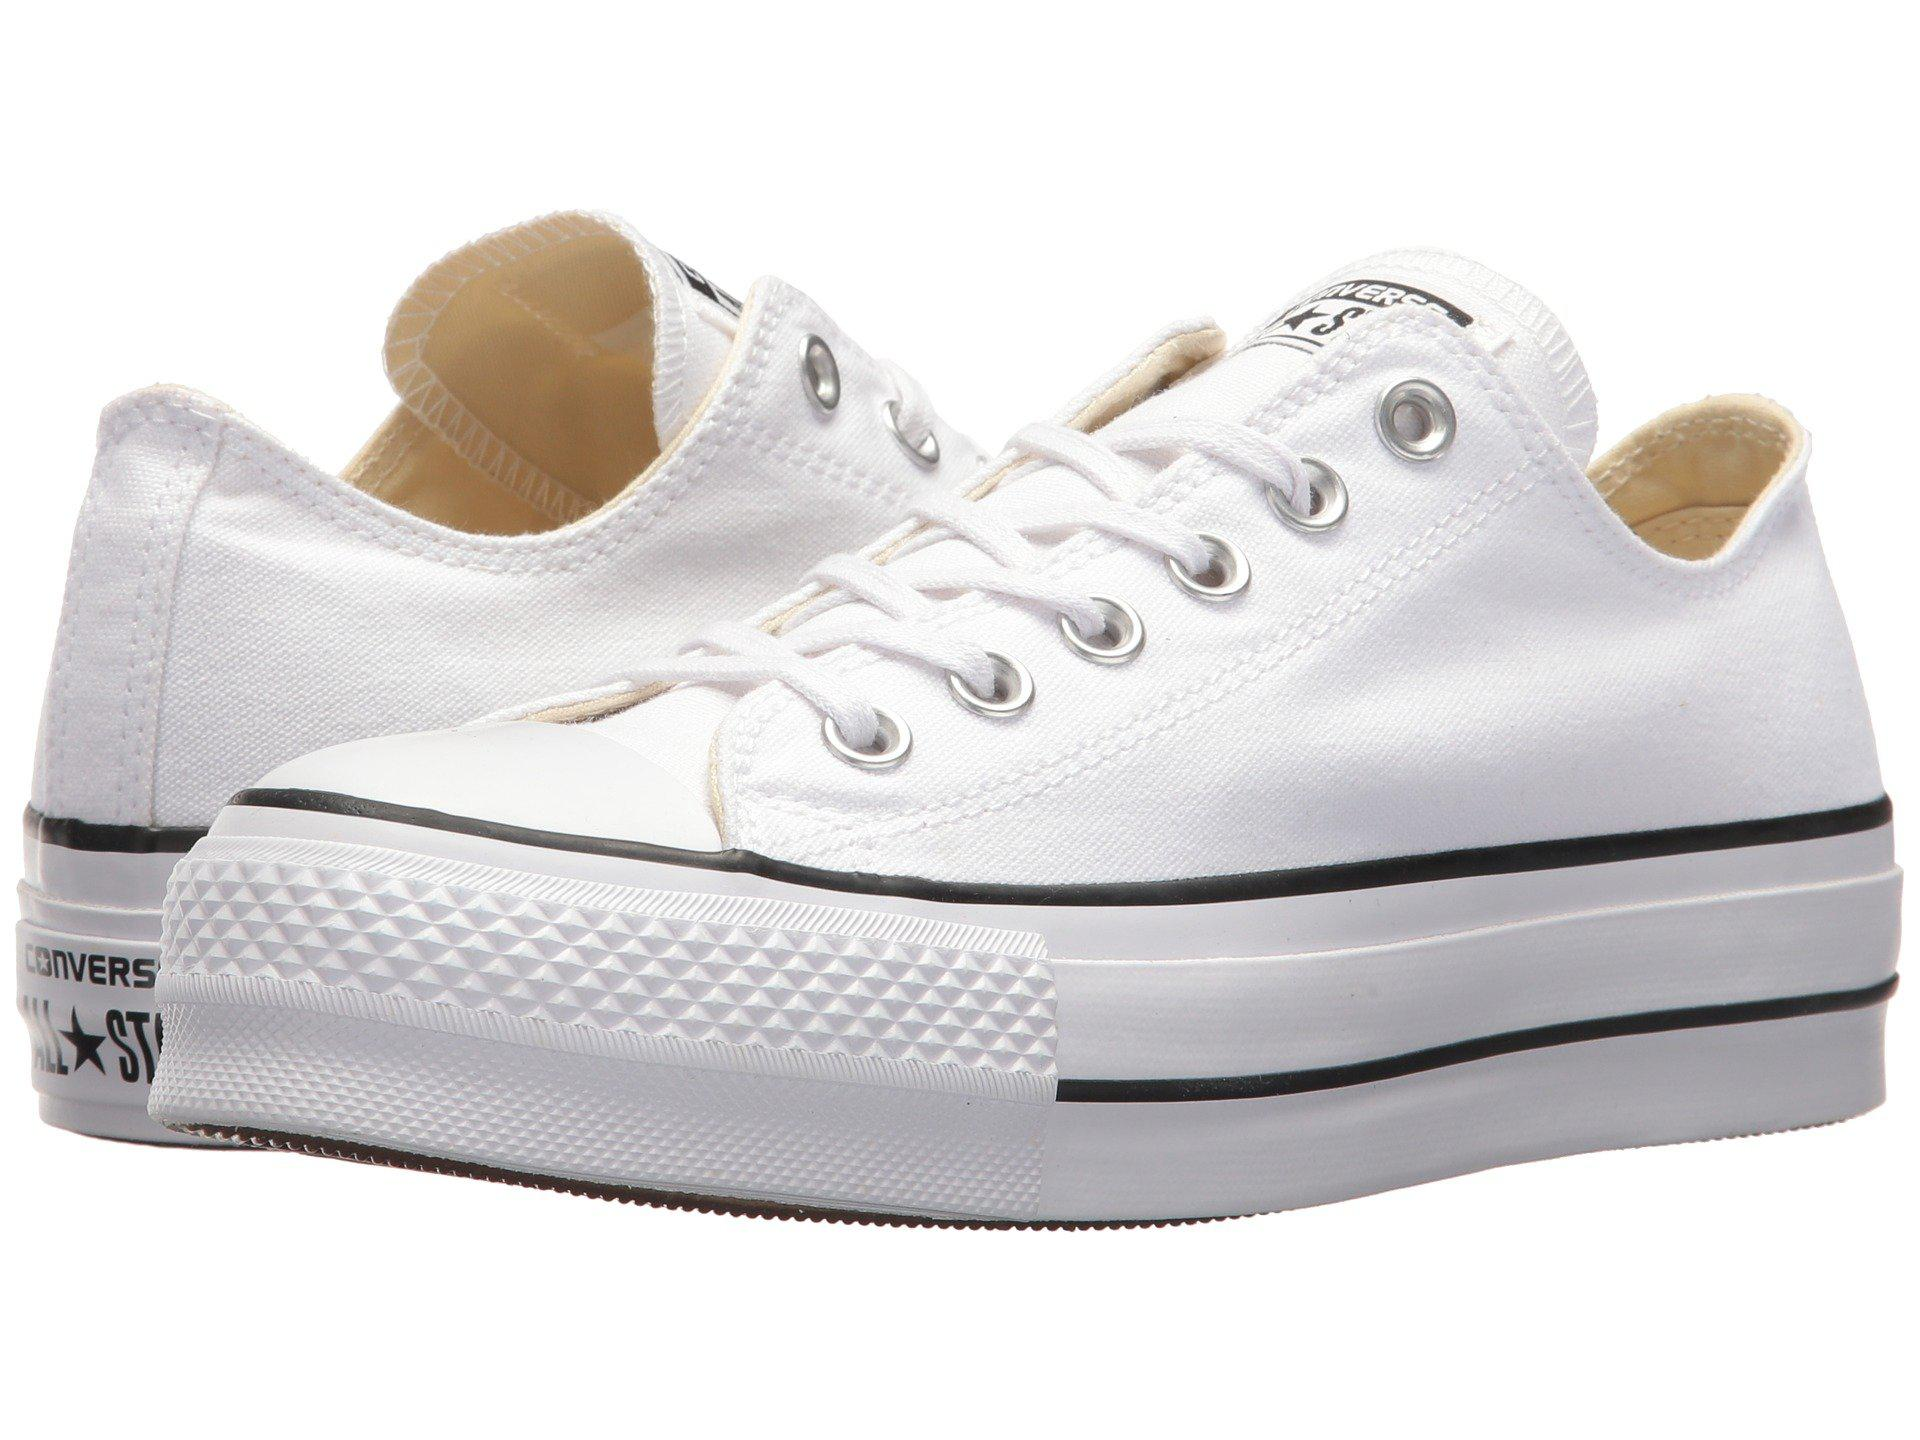 Lyst - Converse Chuck Taylor All Star Lift Ox in White - Save 25.0% d8ef4ef0b1524